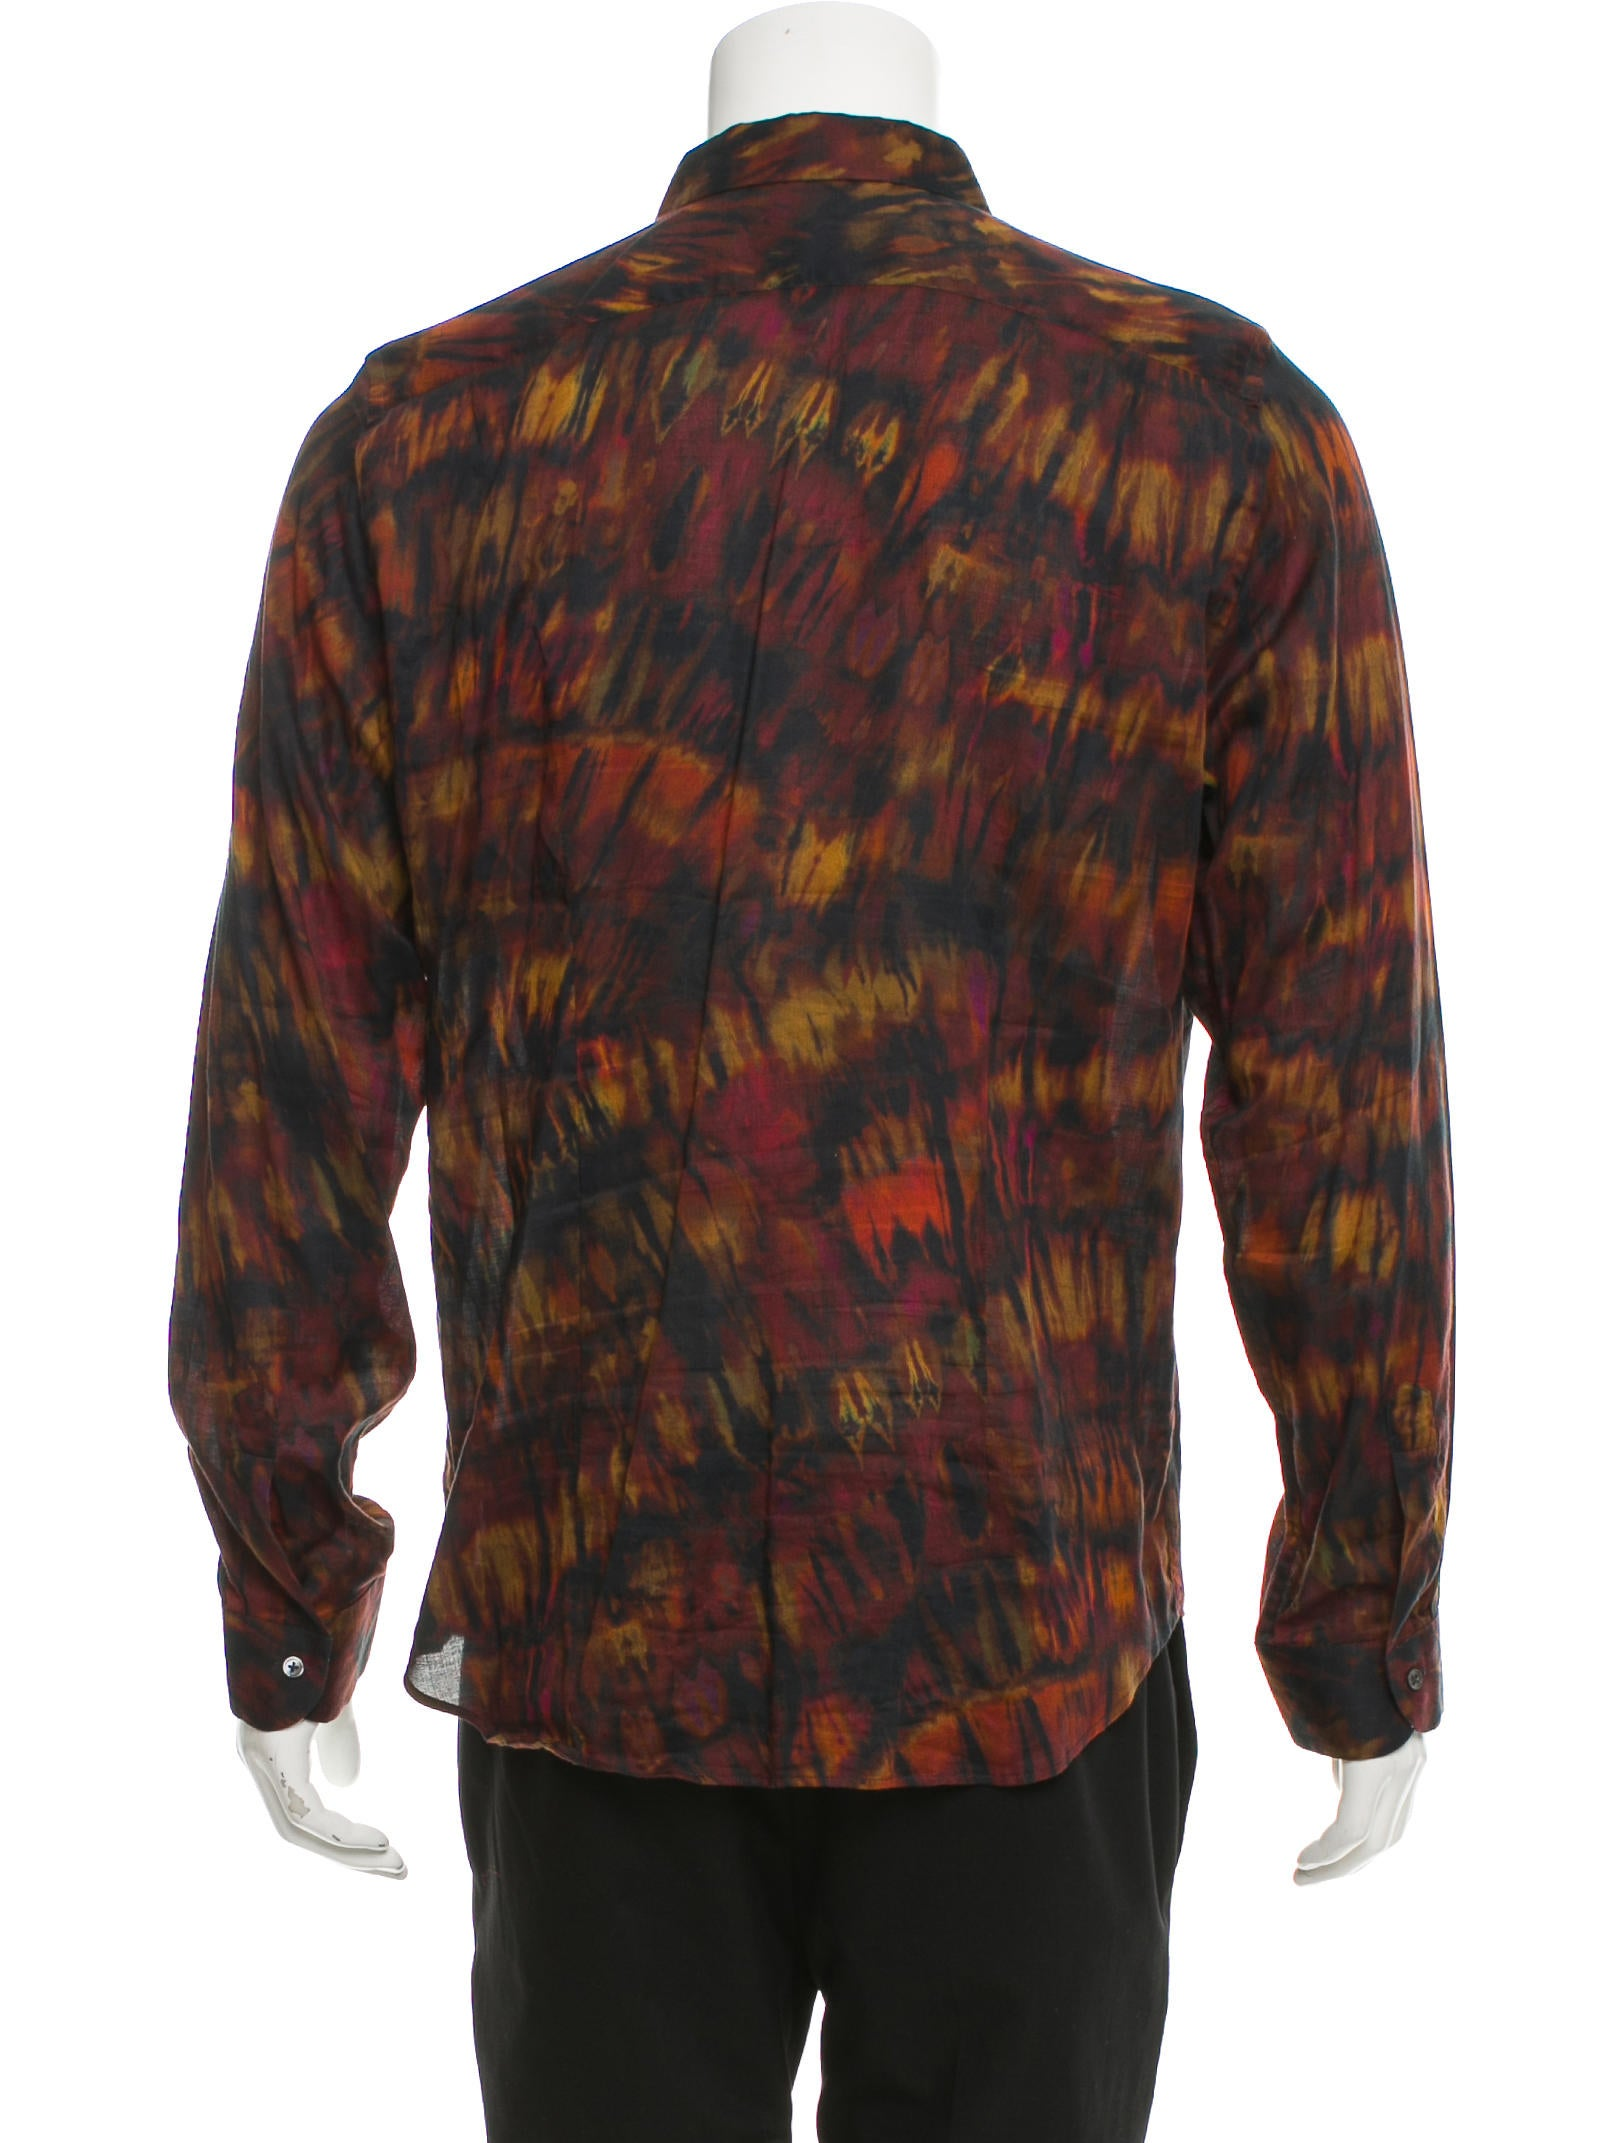 Paul smith tie dye print button up shirt clothing for Tie dye printed shirts